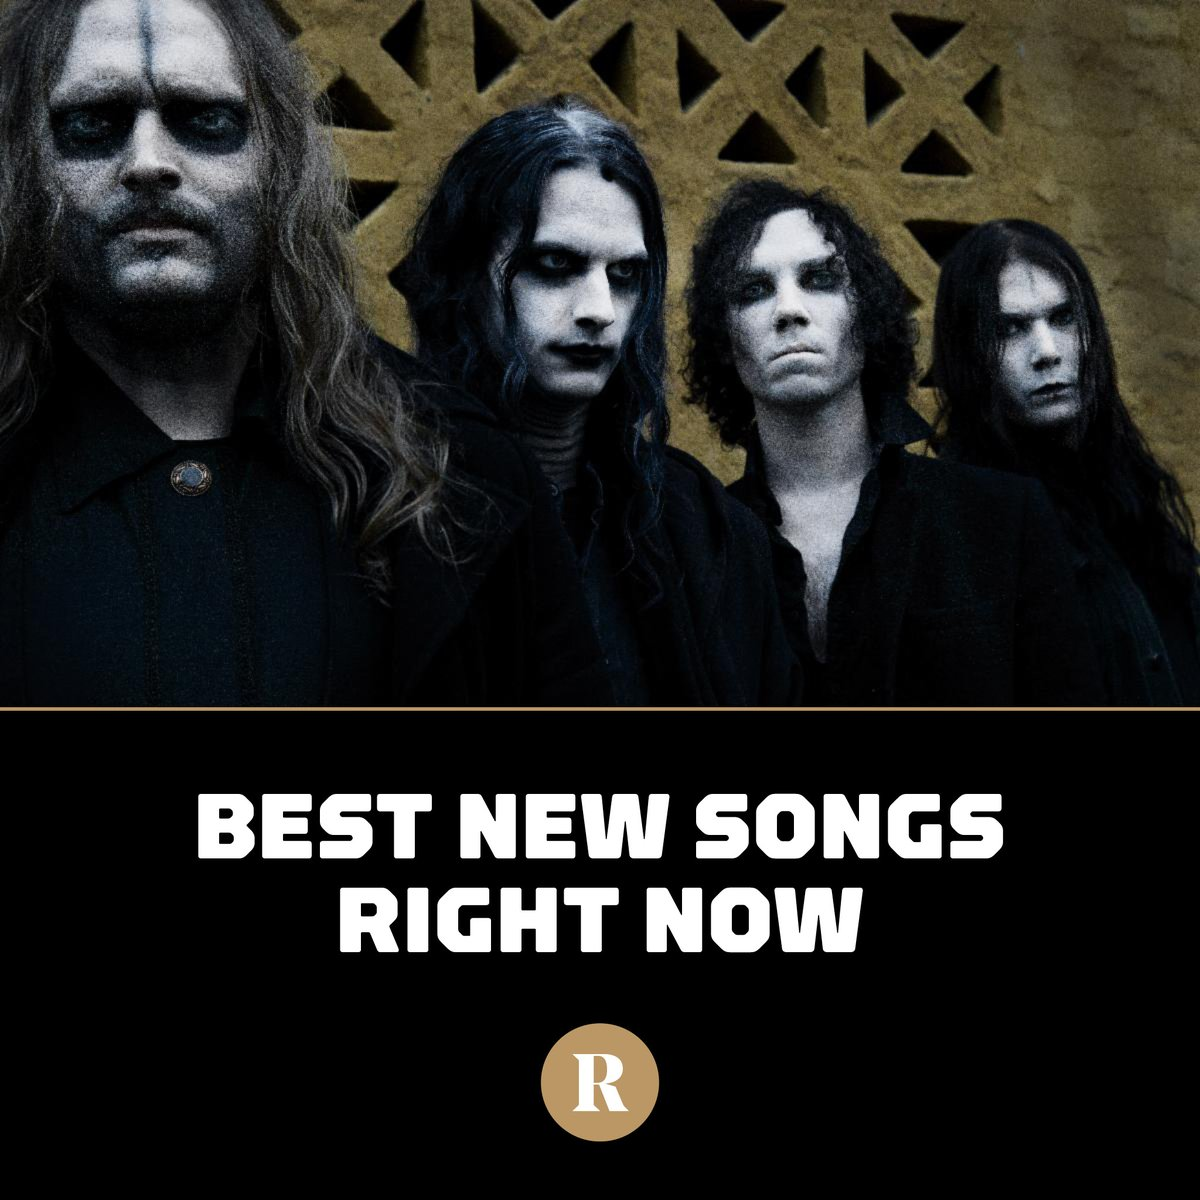 Just in case you're late the party, #Tribulation's newest single, #FuneralPyre is party of @Revolvermag's #SongsOfTheWeek!   🎵:   Their new album, #WhereTheGloomBecomesSound drops Jan. 29th!